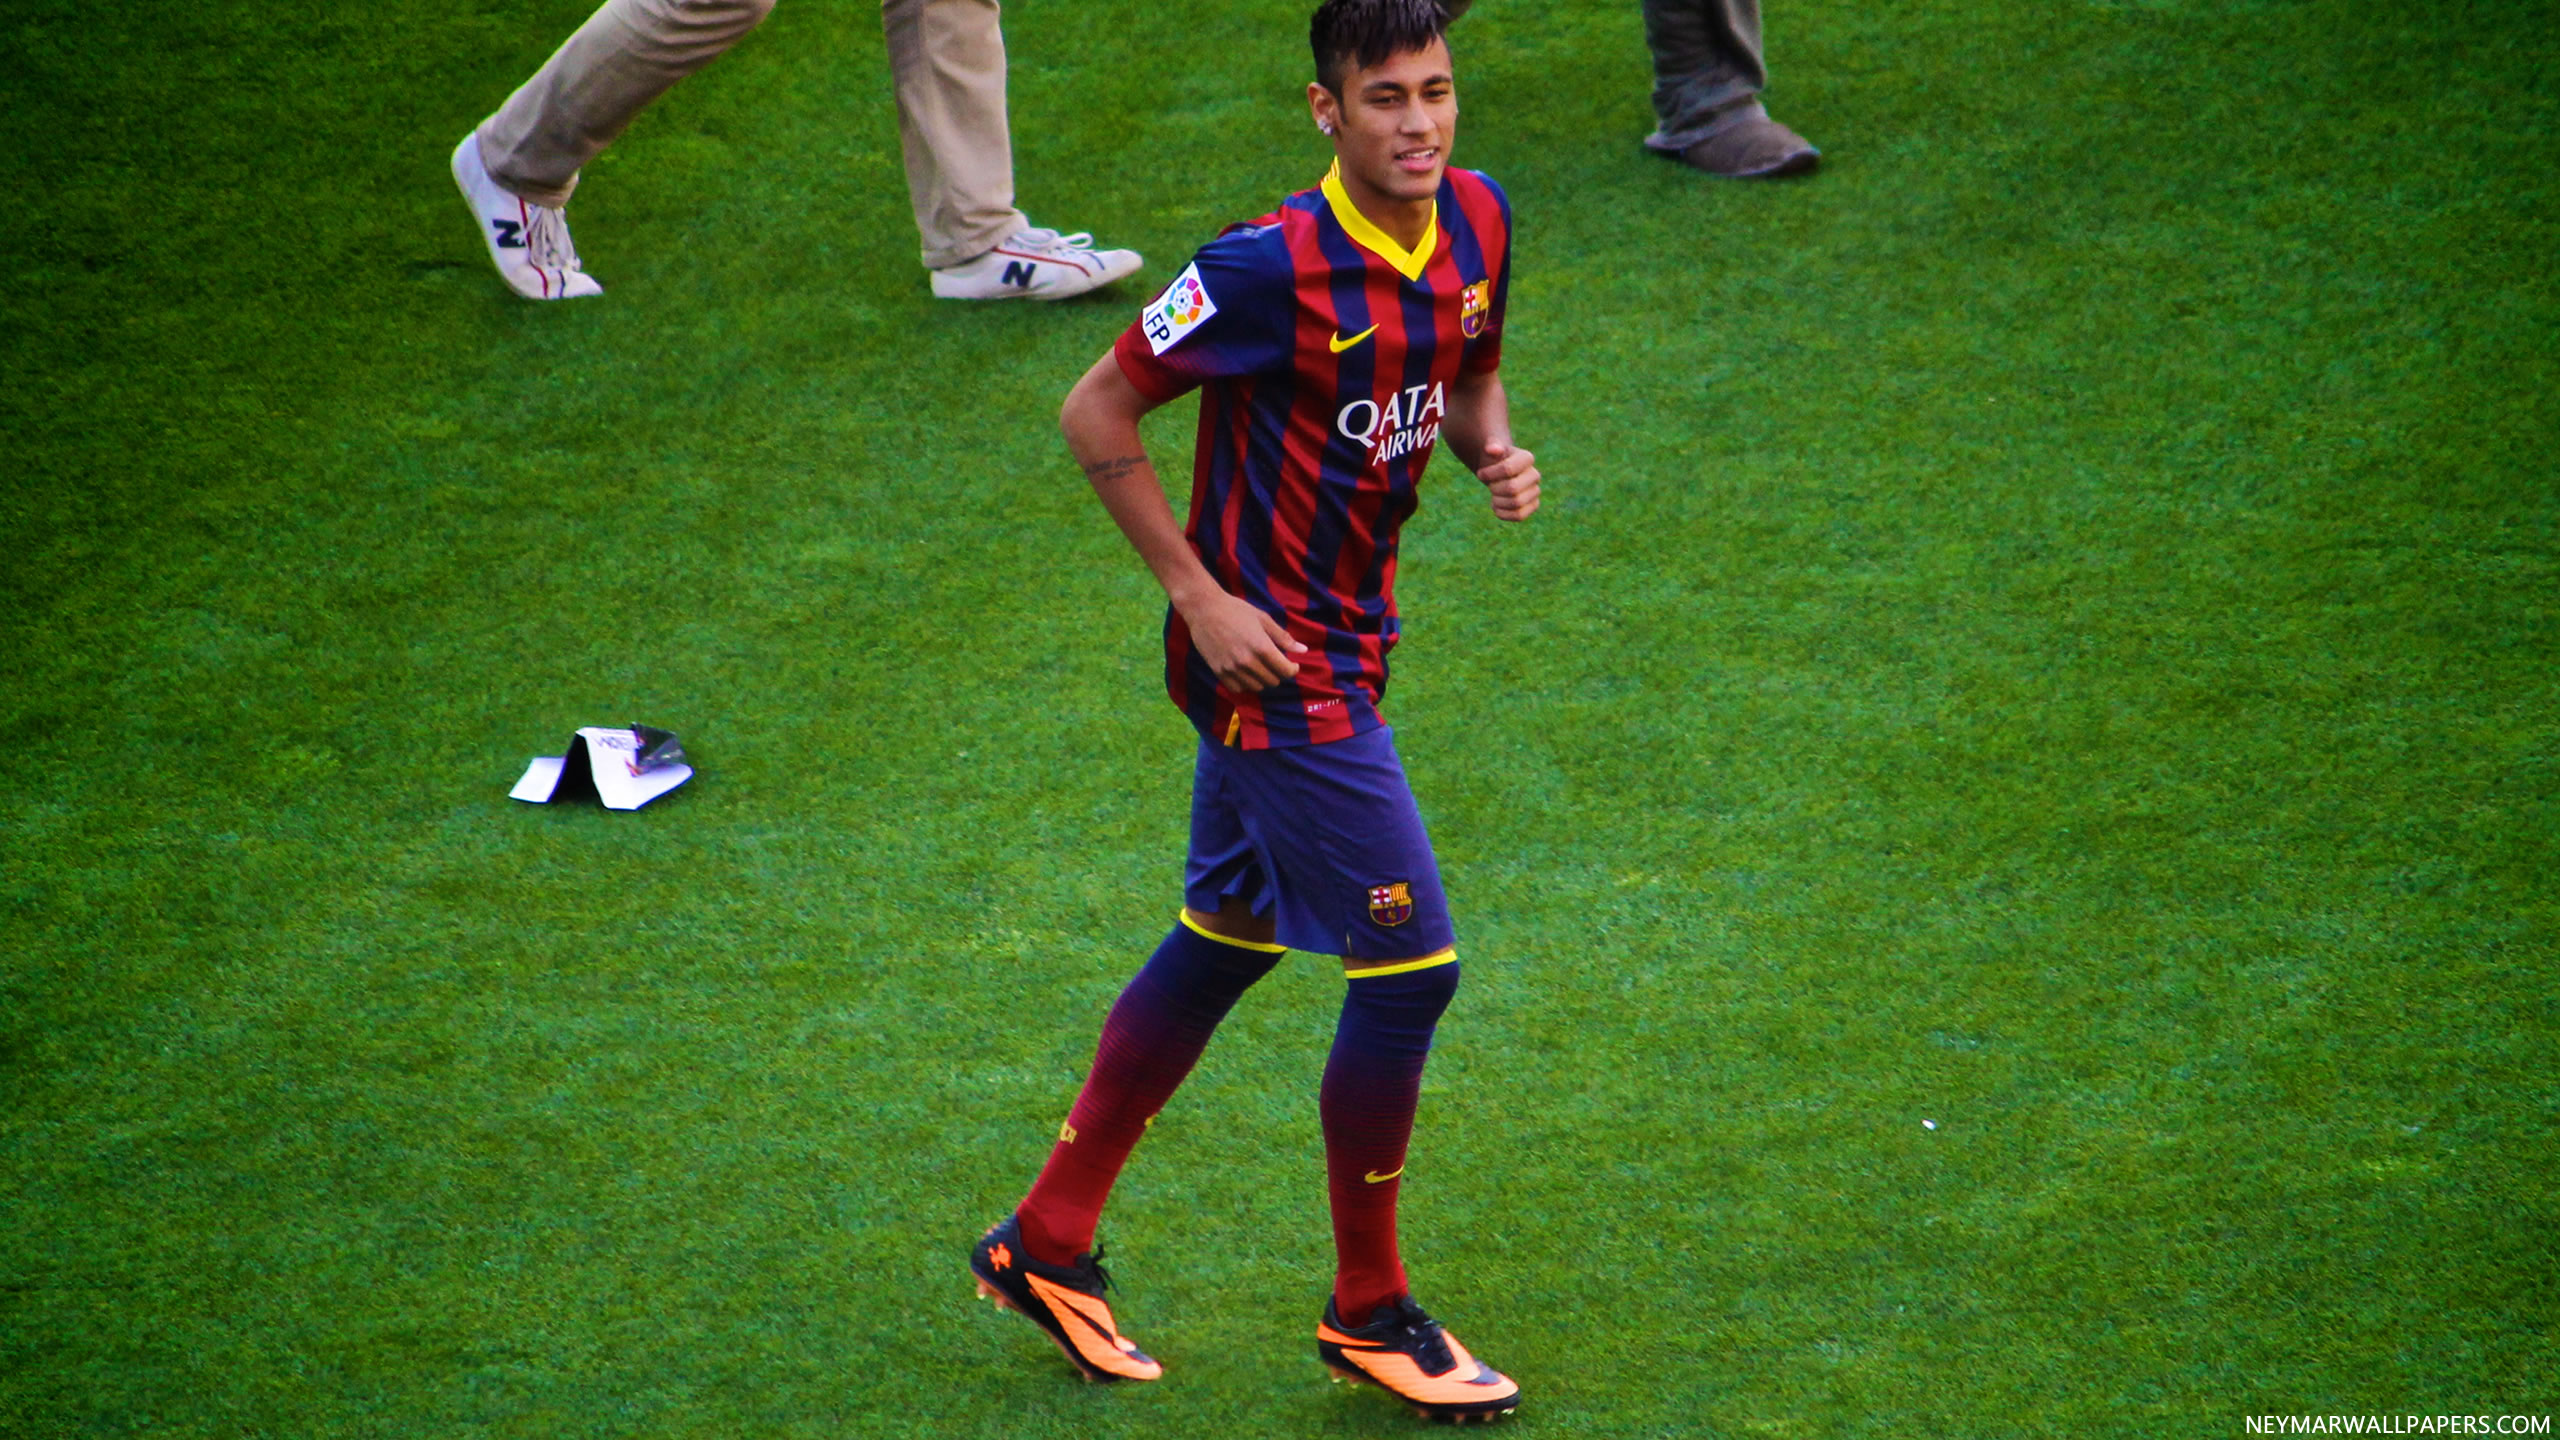 Neymar on football field